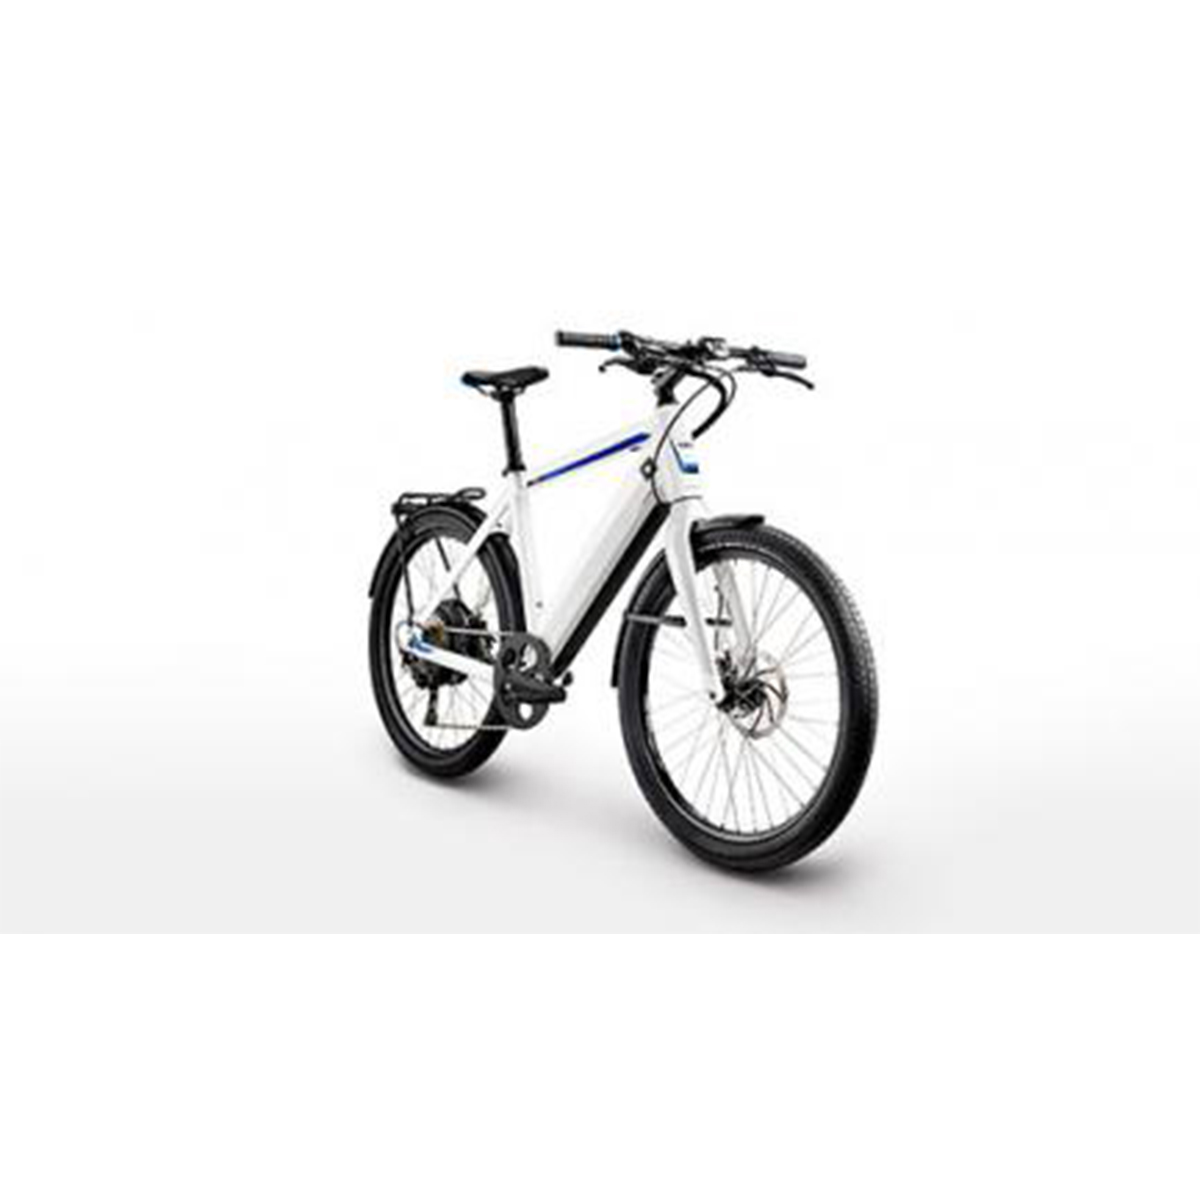 Stromer ST1 Electric Bike